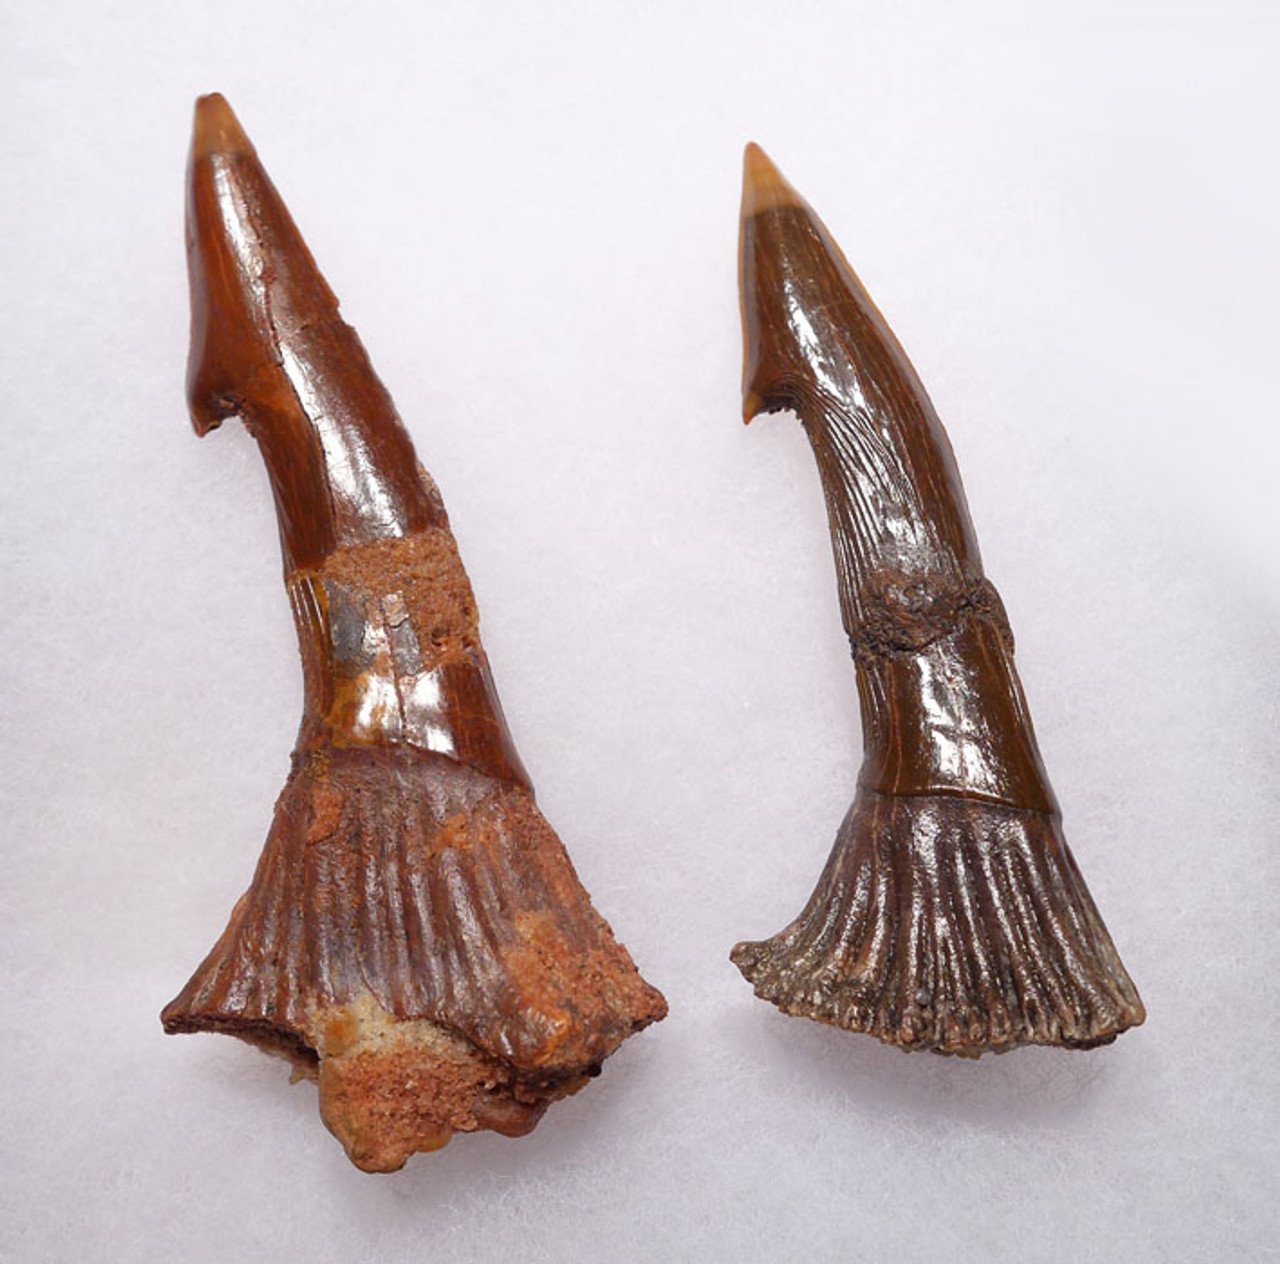 SHX046 - PAIR OF LARGE CRETACEOUS SAWSHARK ROSTRAL FOSSIL TEETH FROM ONCHOPRISTIS